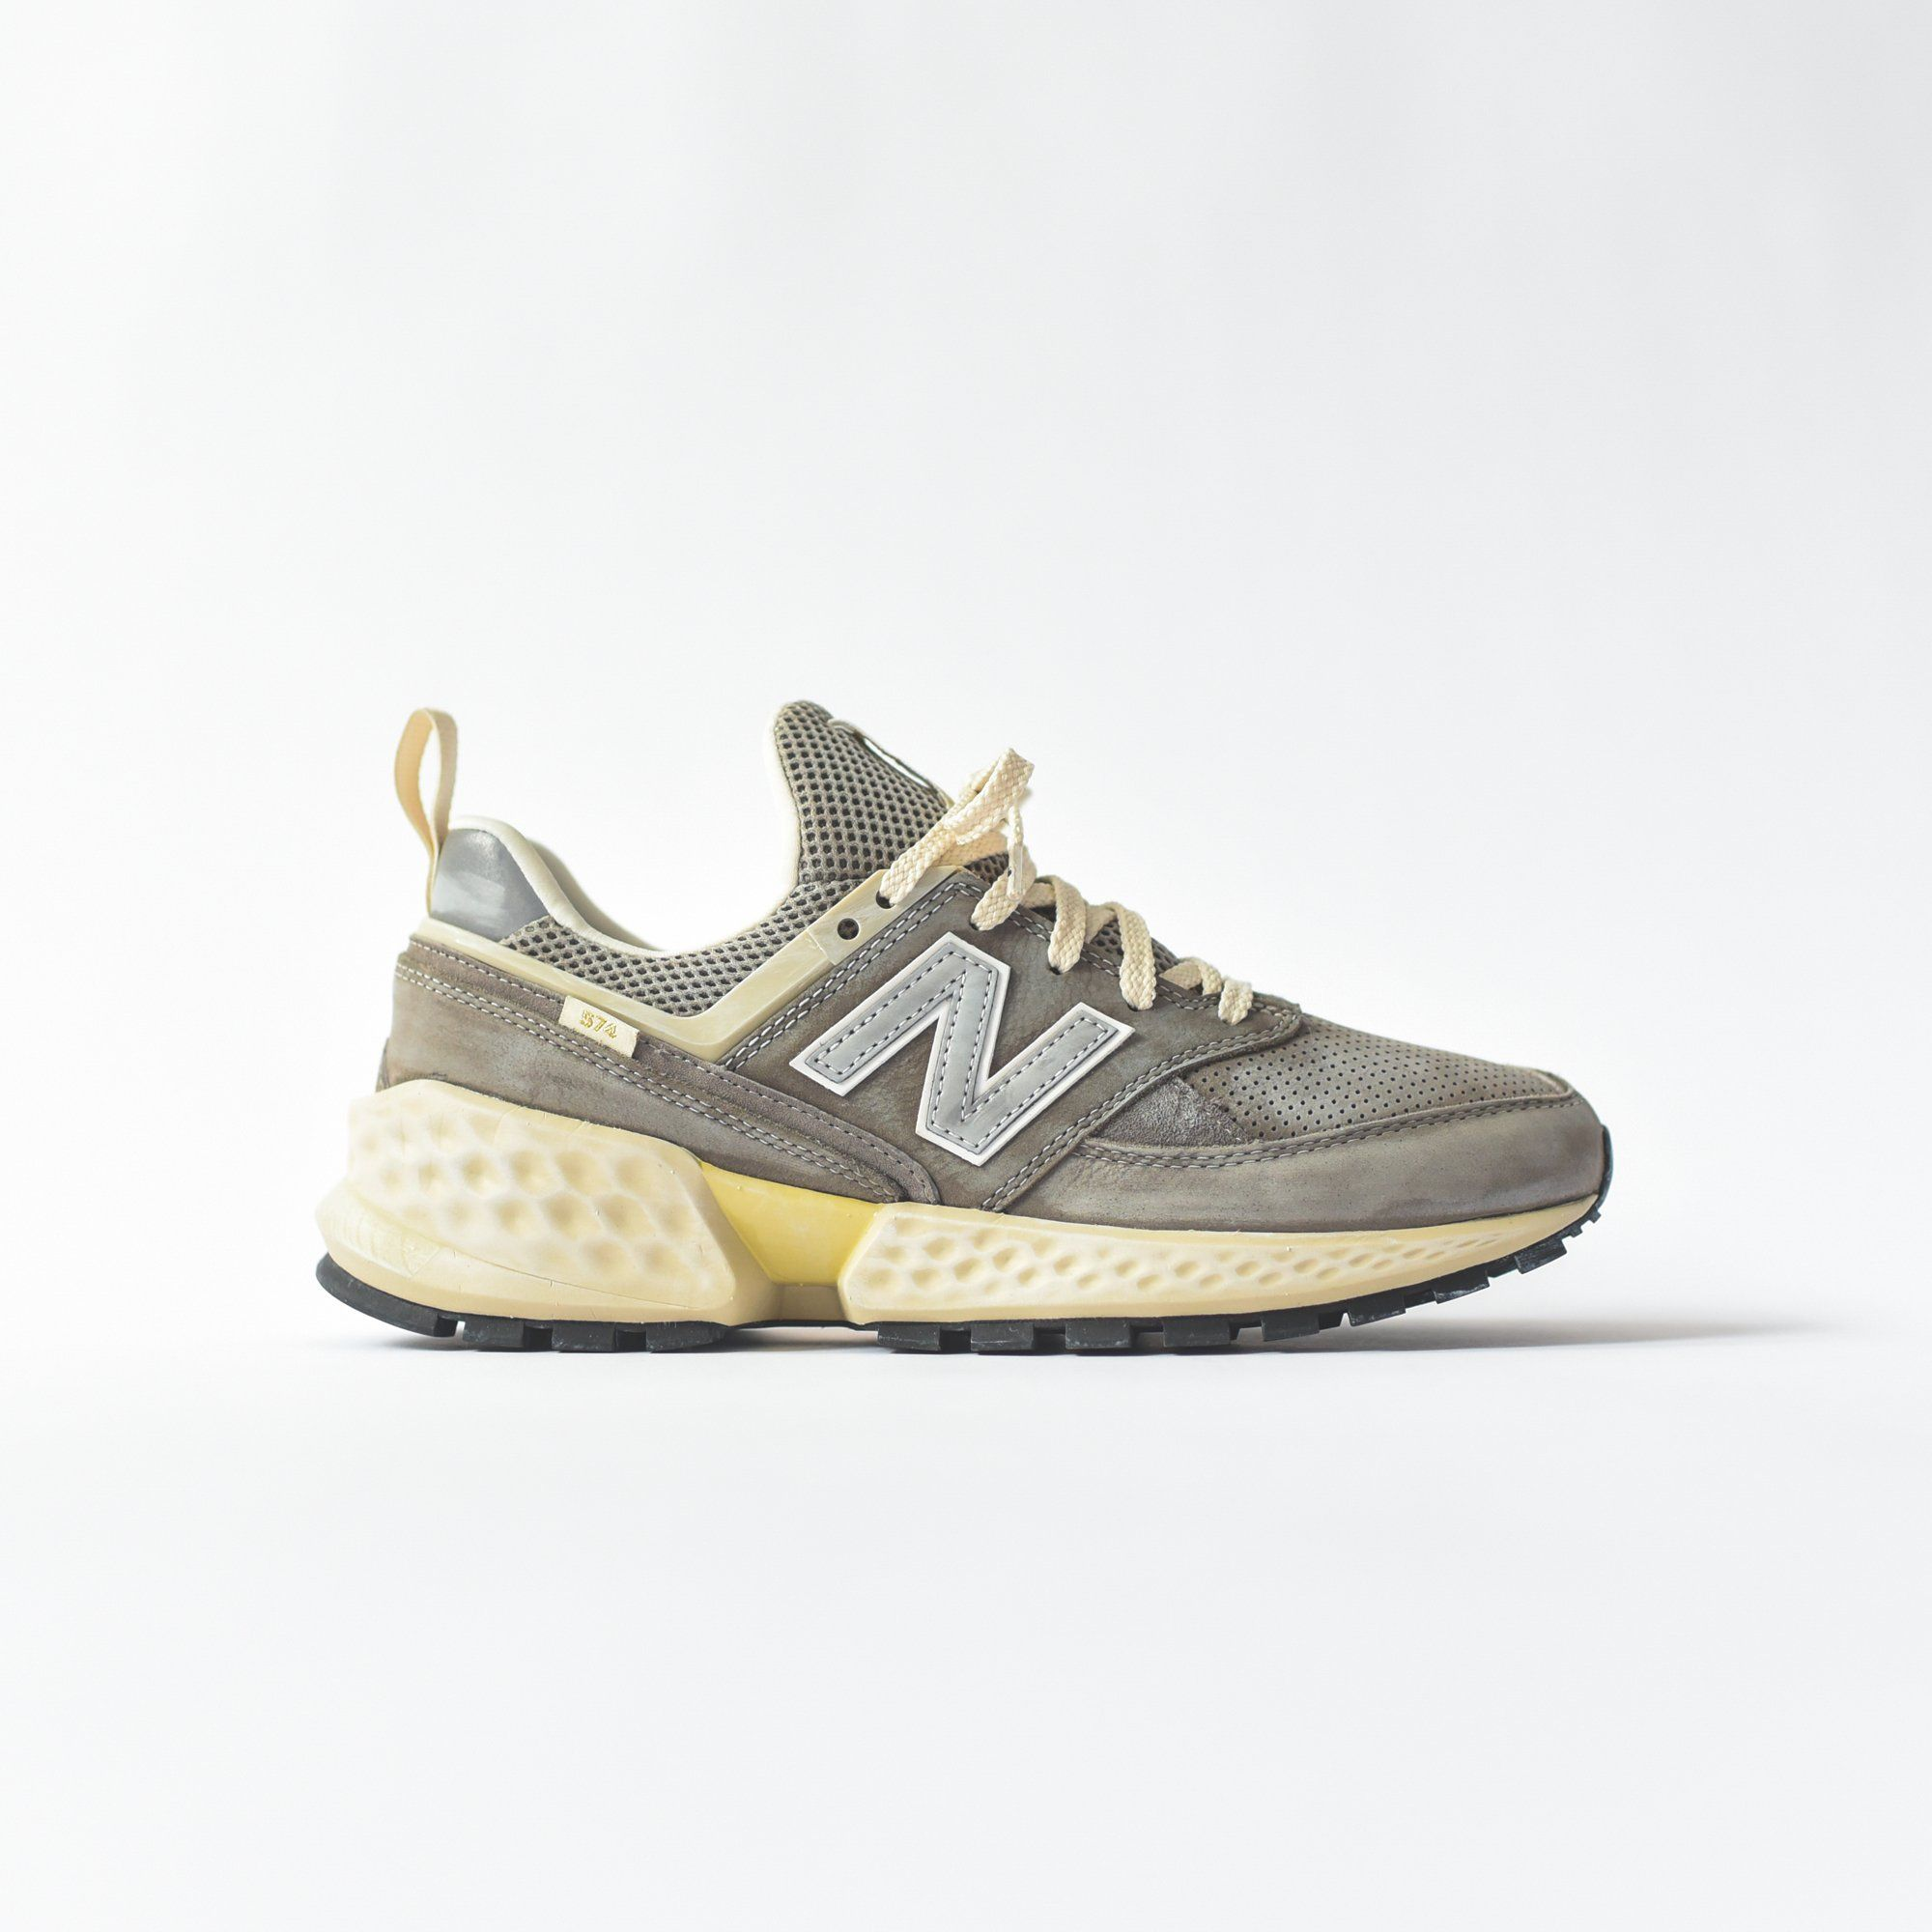 e38d839ed88c New Balance 574 Sport - Vintage Grey - 3 in 2019